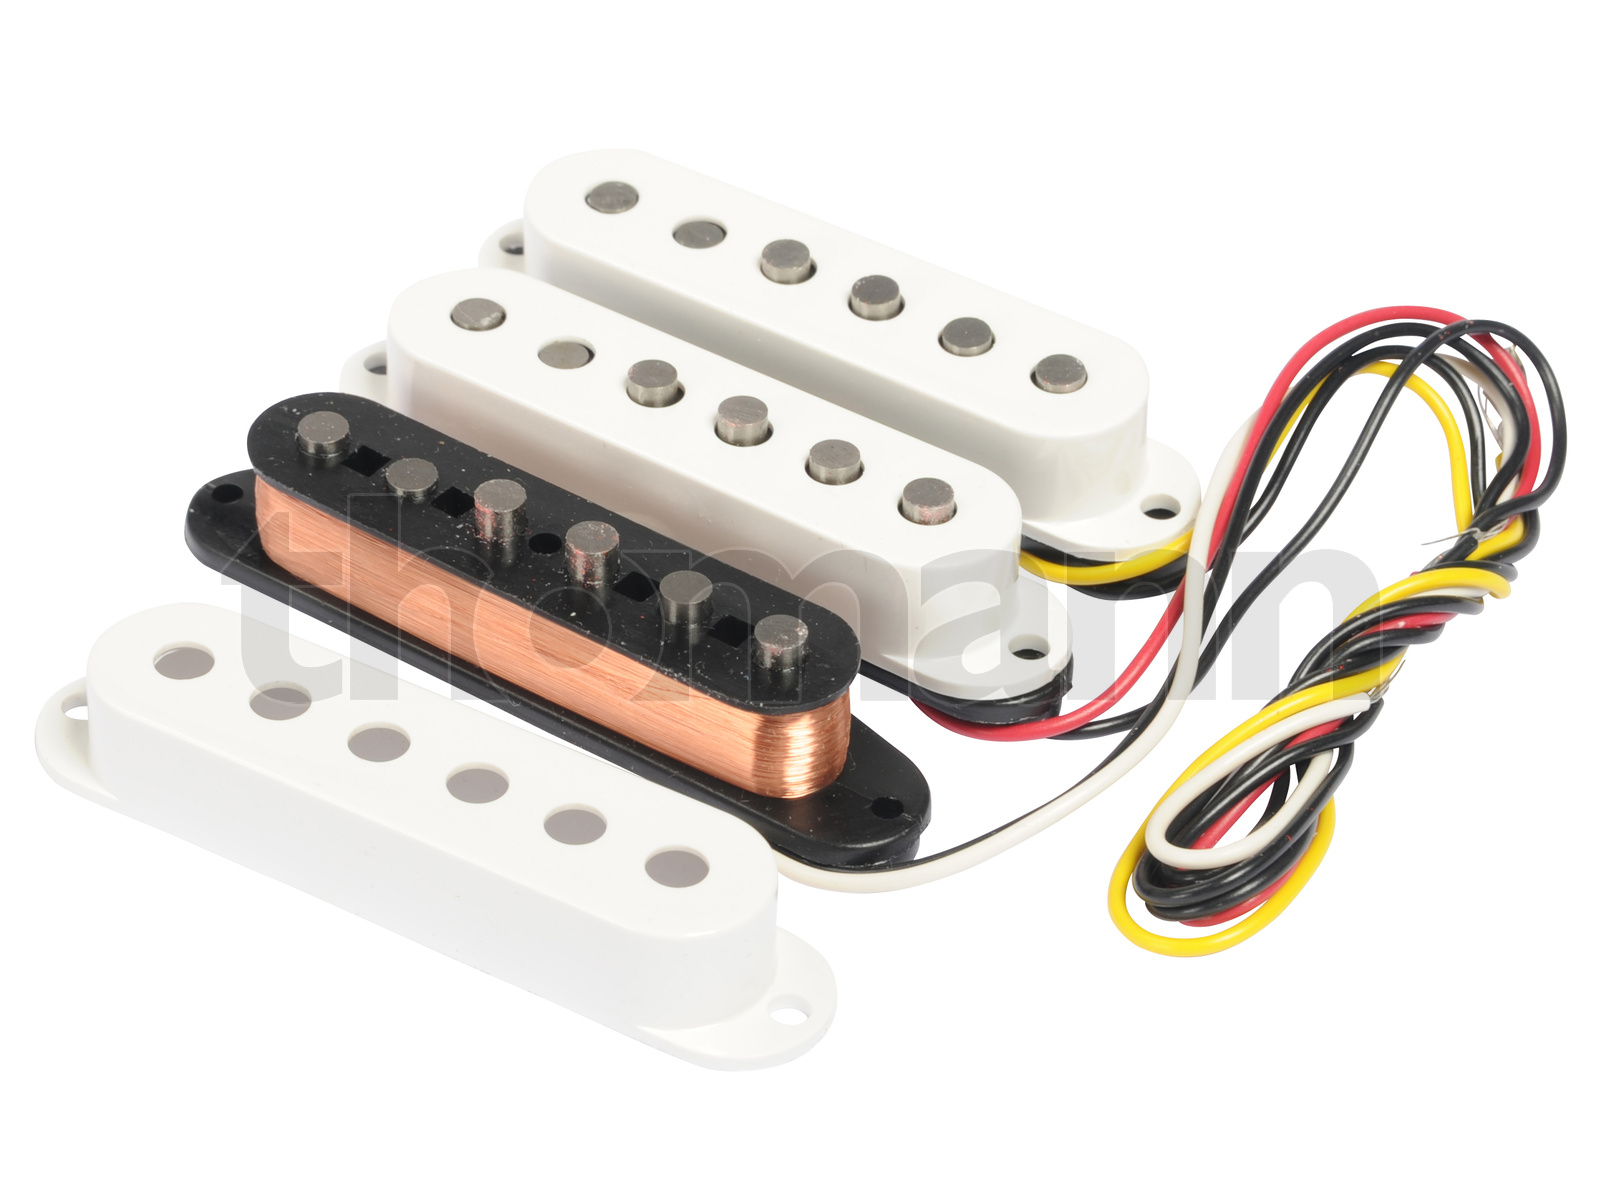 fender tex mex strat pickups 612246 fender tex mex strat pickups image ( 612246) audiofanzine fender tex mex pickup wiring diagram at aneh.co